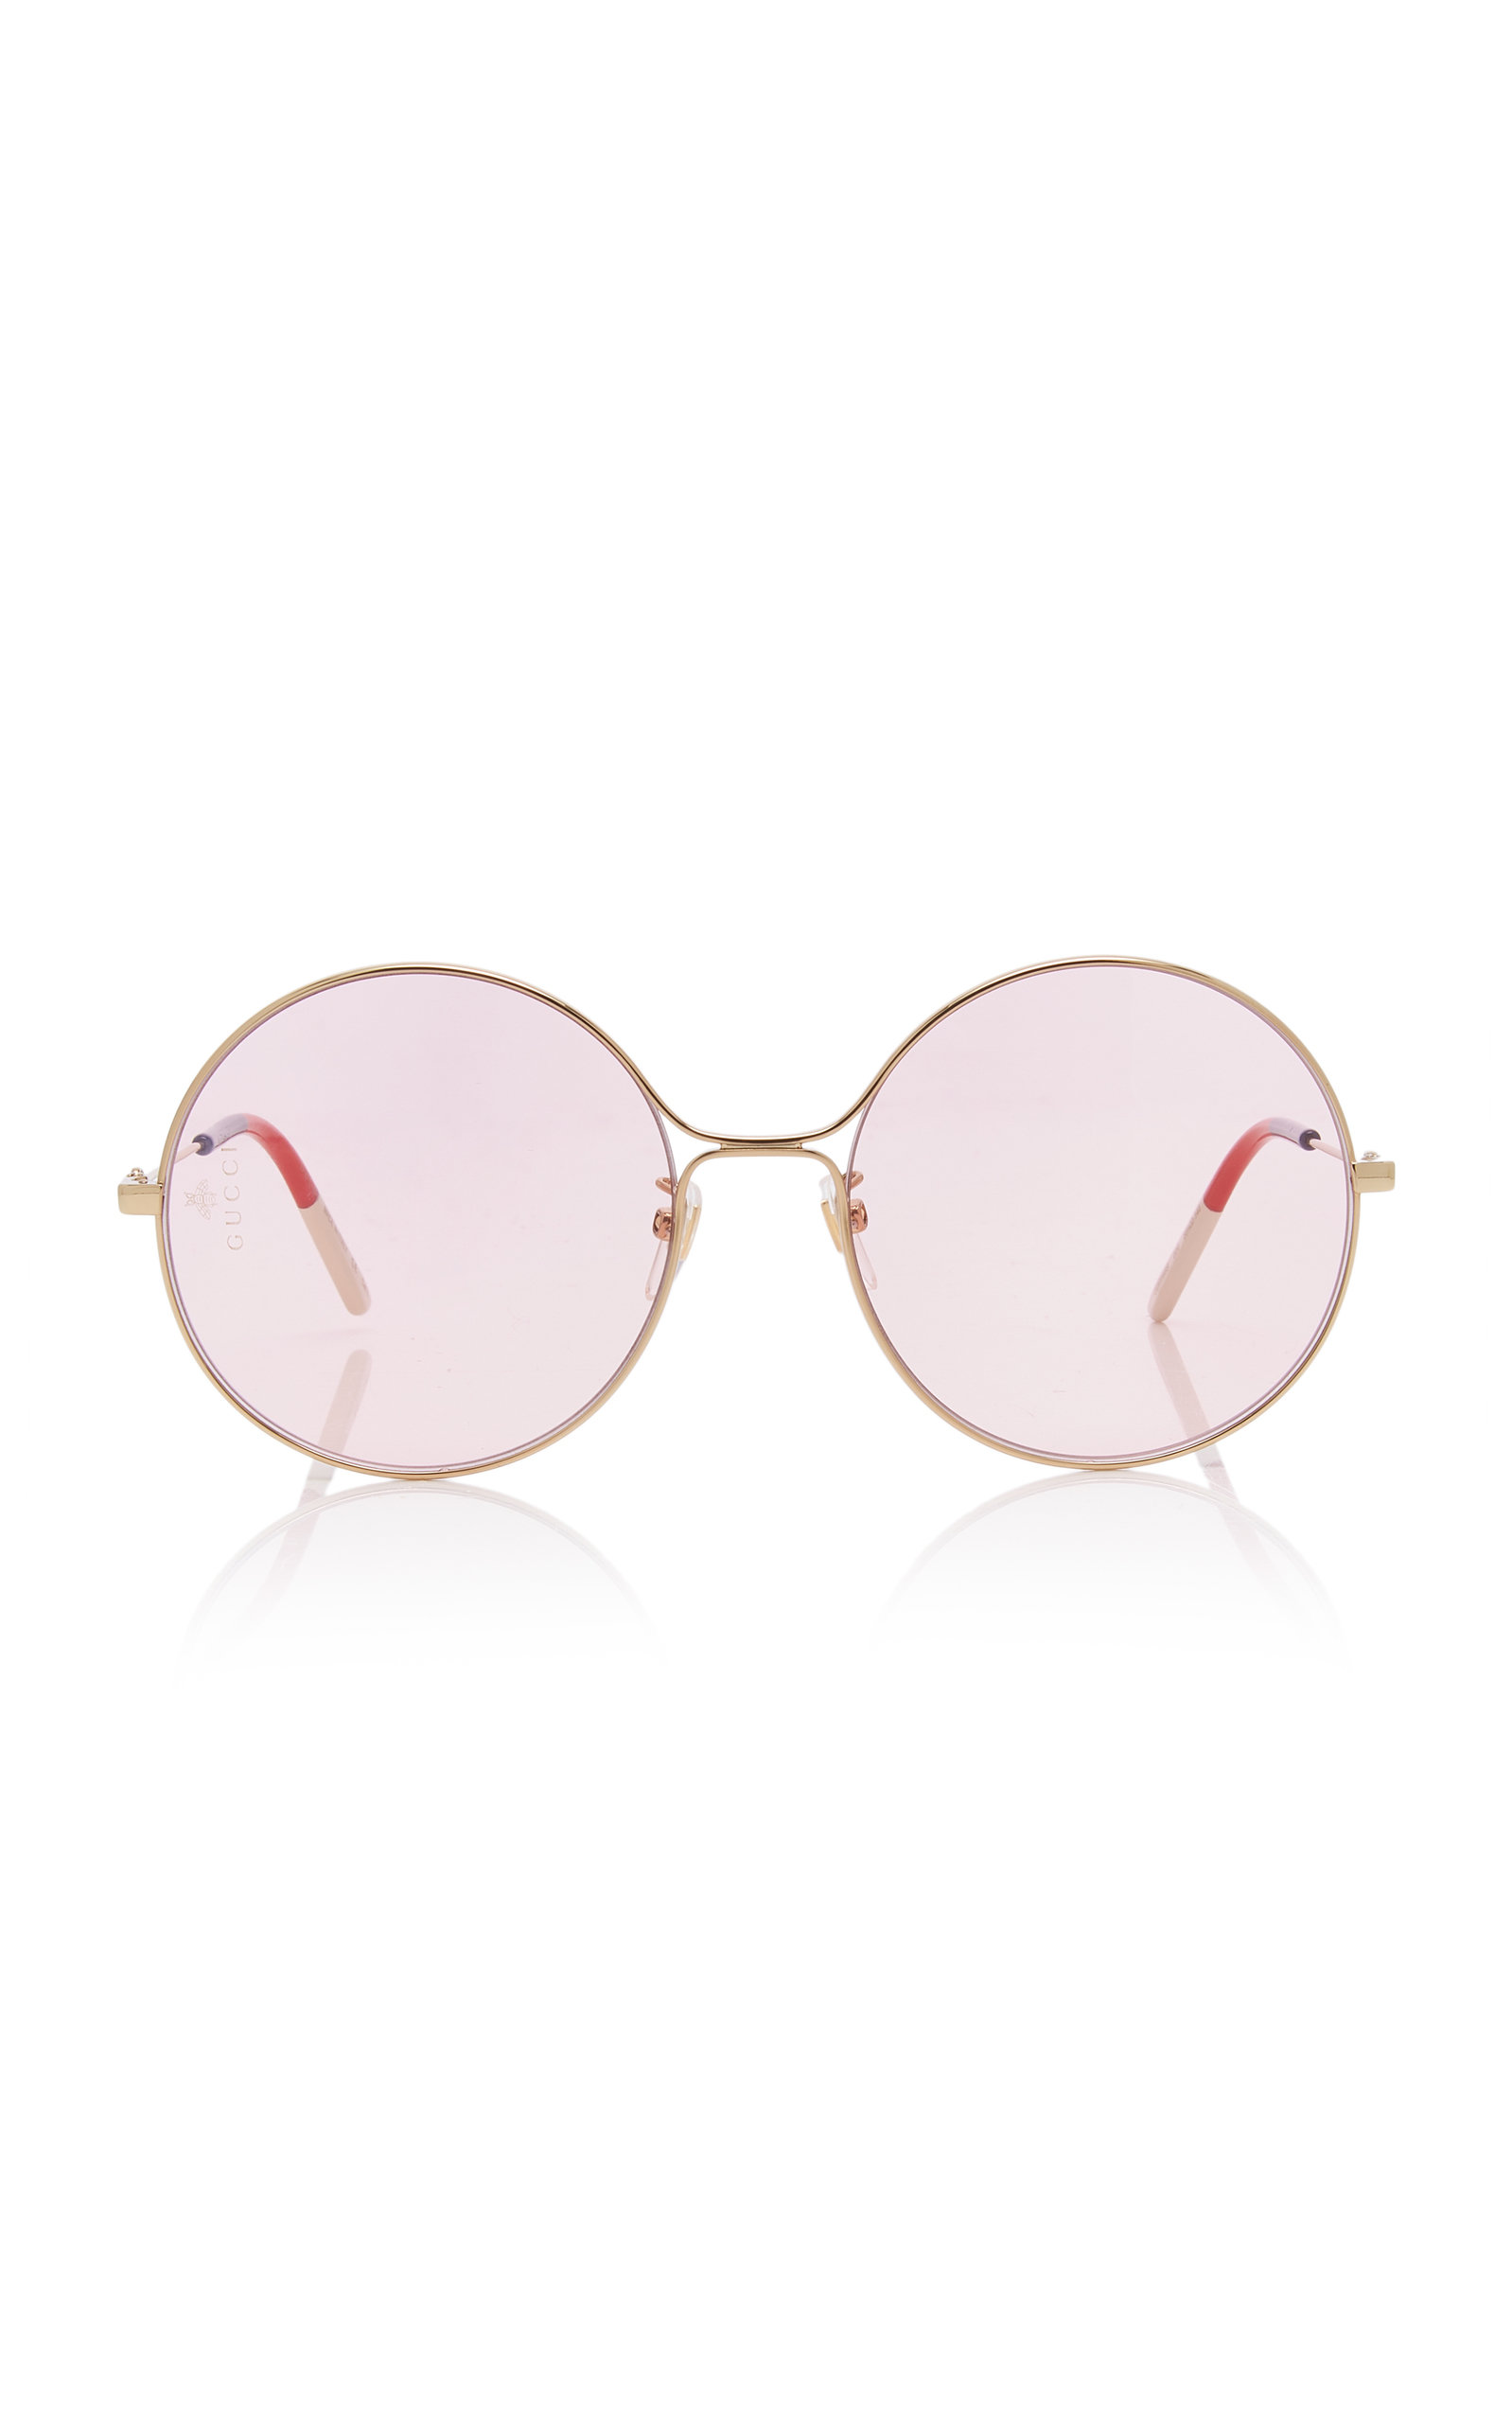 a08e720306694 Gucci Sunglasses Glasant Oversized Metal Round Sunglasses. CLOSE. Loading